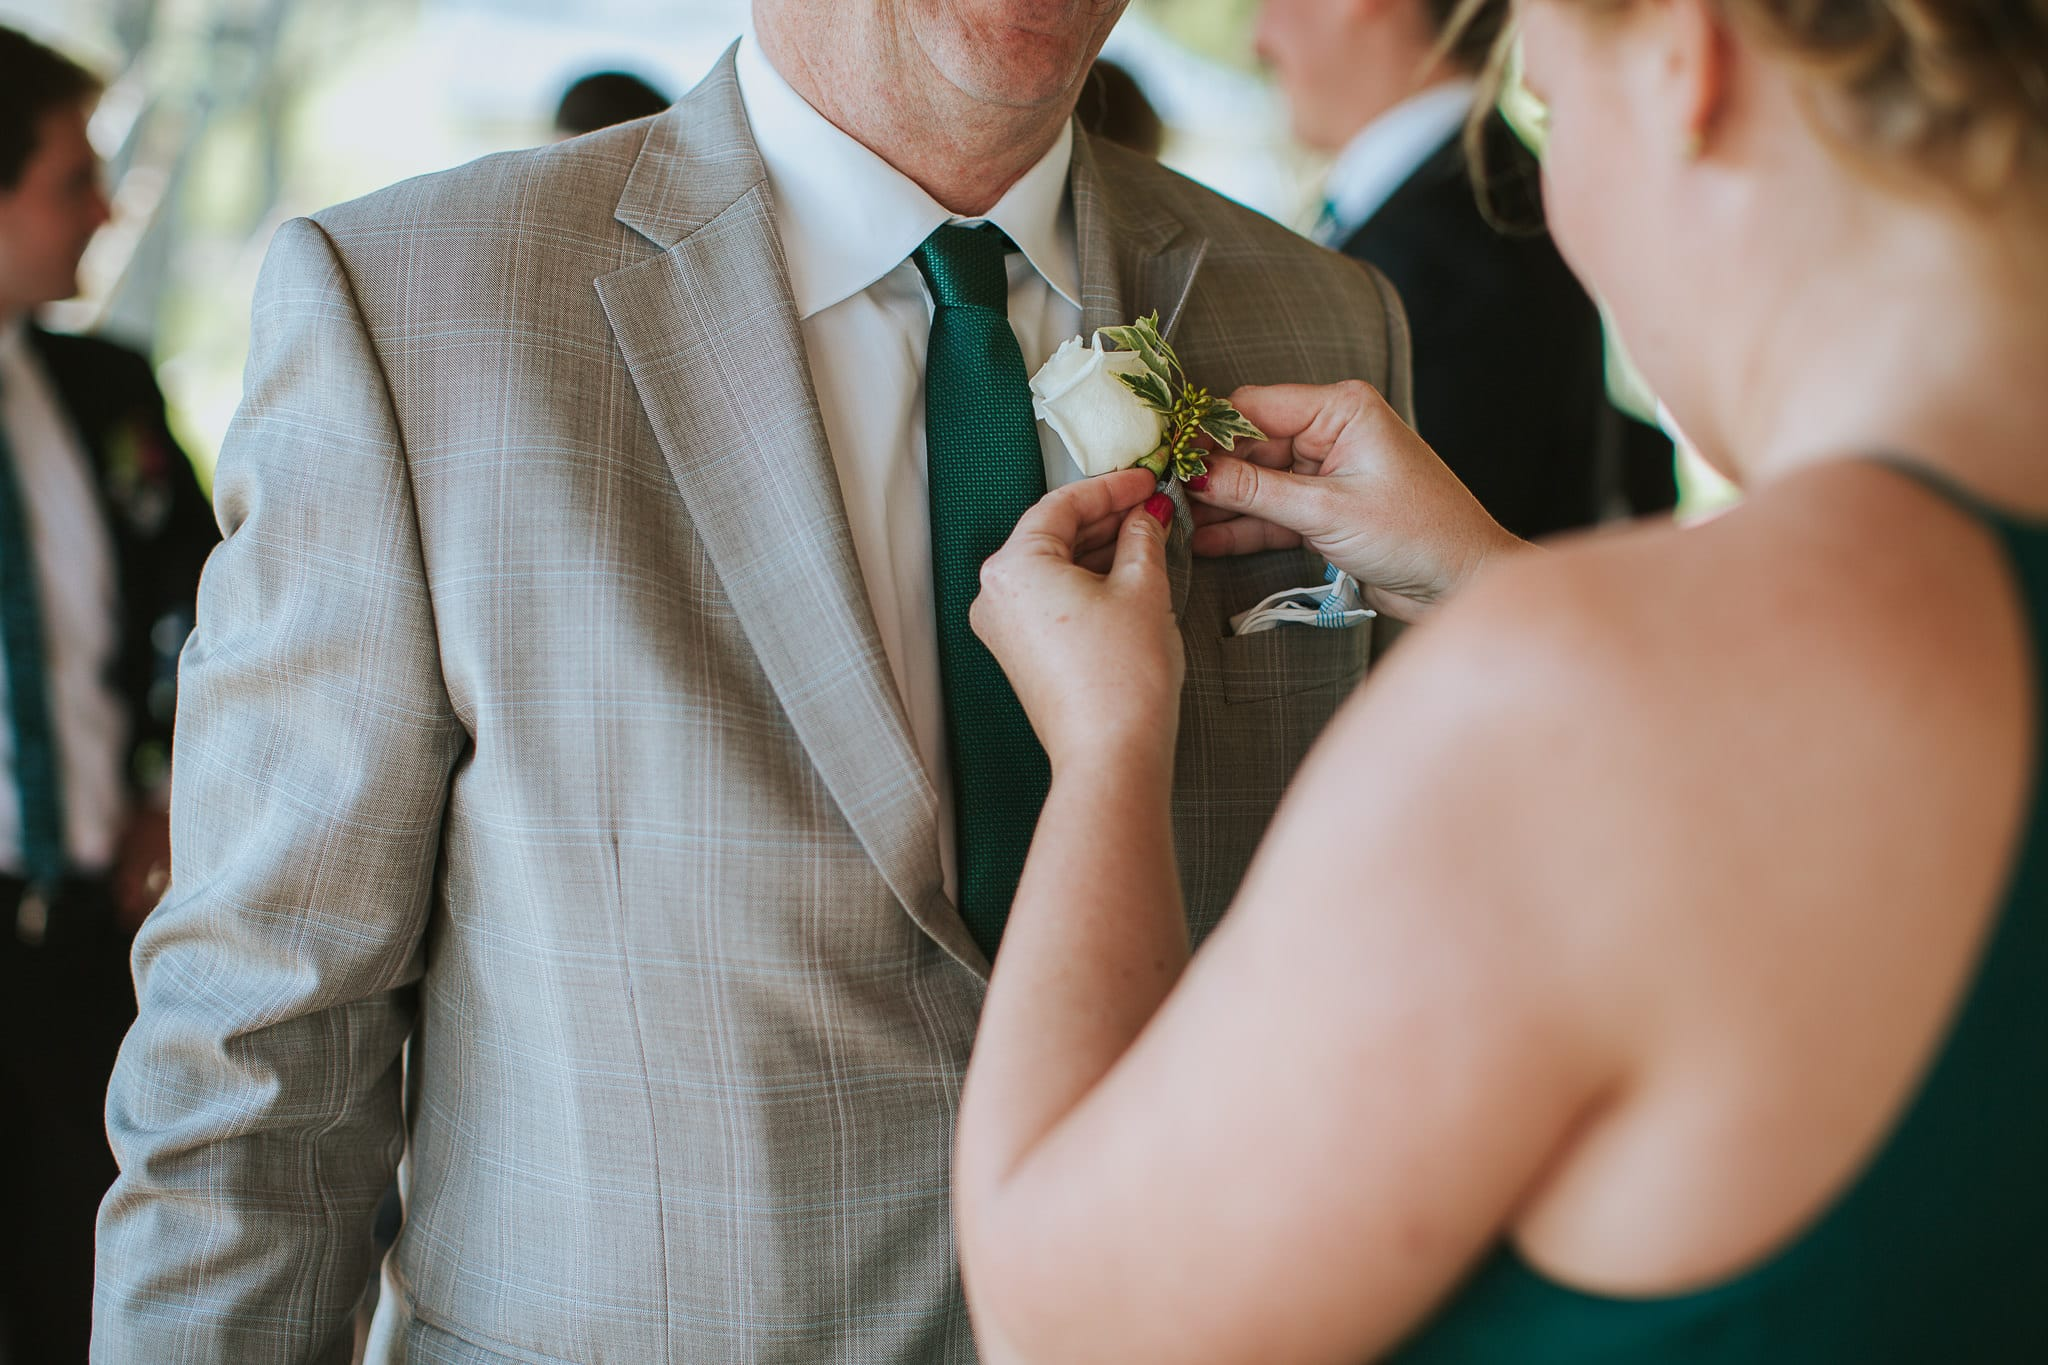 """We're got a few fun personalized items like cocktail napkins, coozies, and signs for the back of our bride/groom chair that read """"same team"""" :)"""